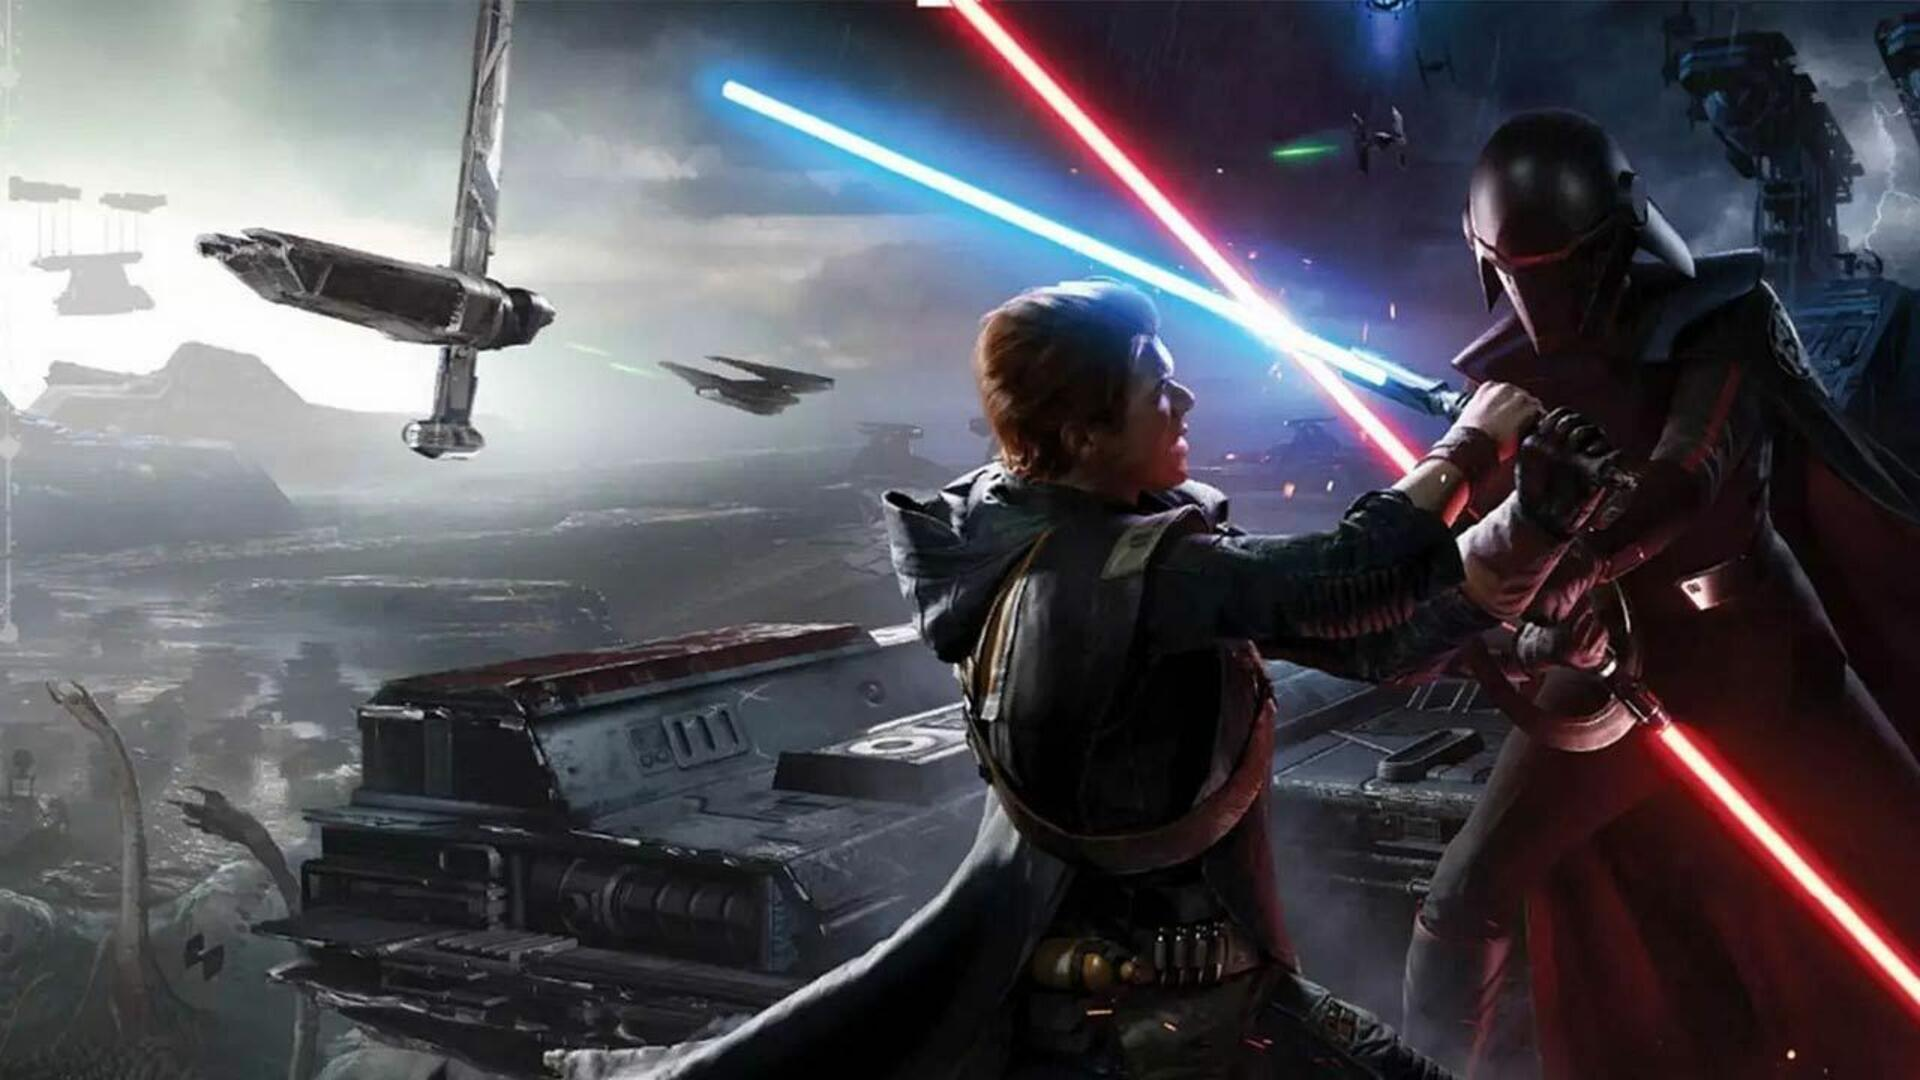 From Jedi: Fallen Order to Bushido Blade: The 35 Year Quest for the Perfect Video Game Lightsaber